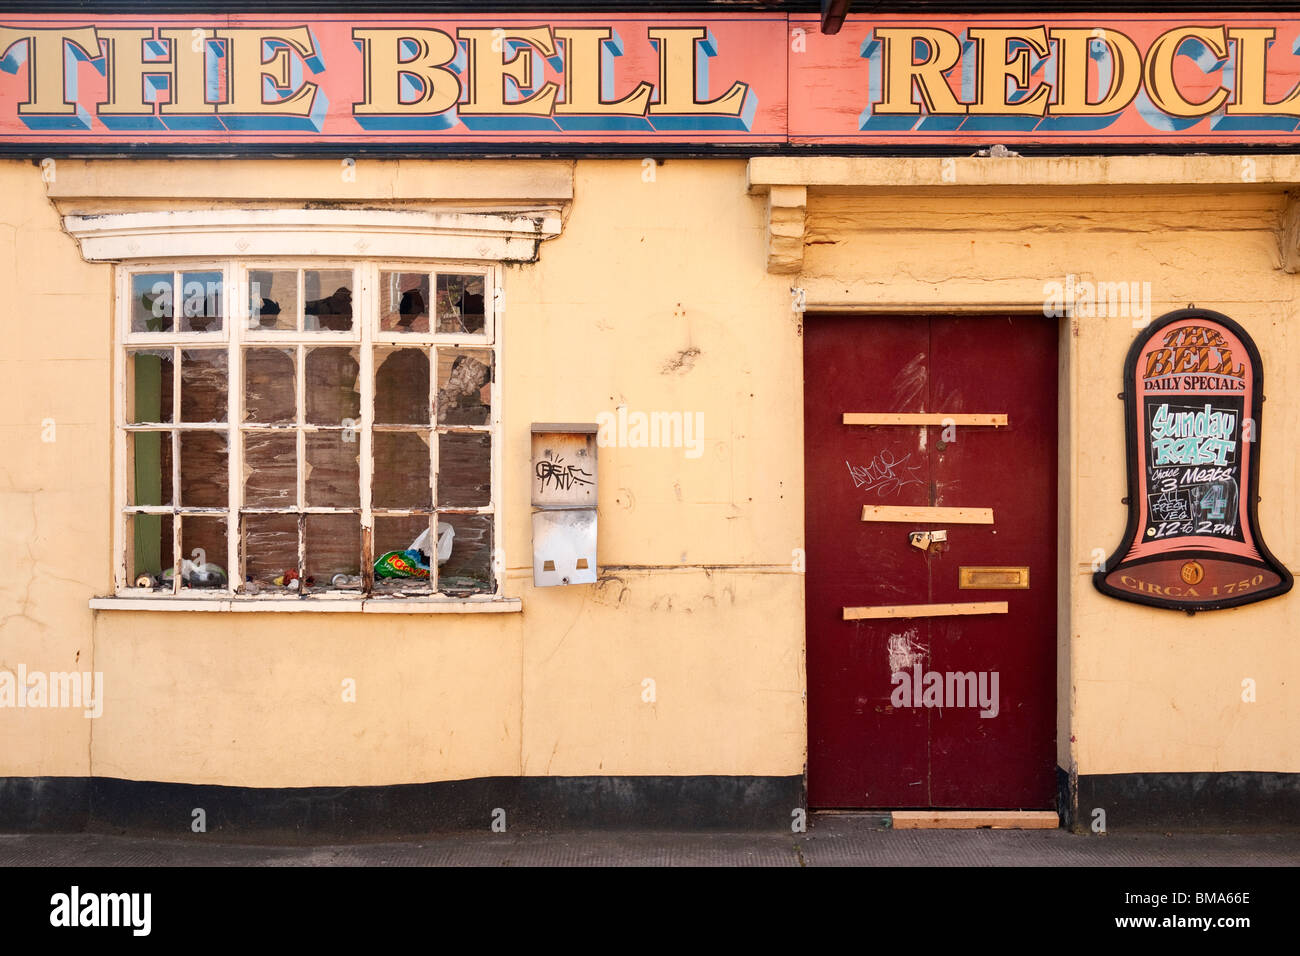 Derelict pub, 'The Bell' (1752), Redcliffe, Bristol, England, UK, closed by Birmingham-based Enterprise - Stock Image